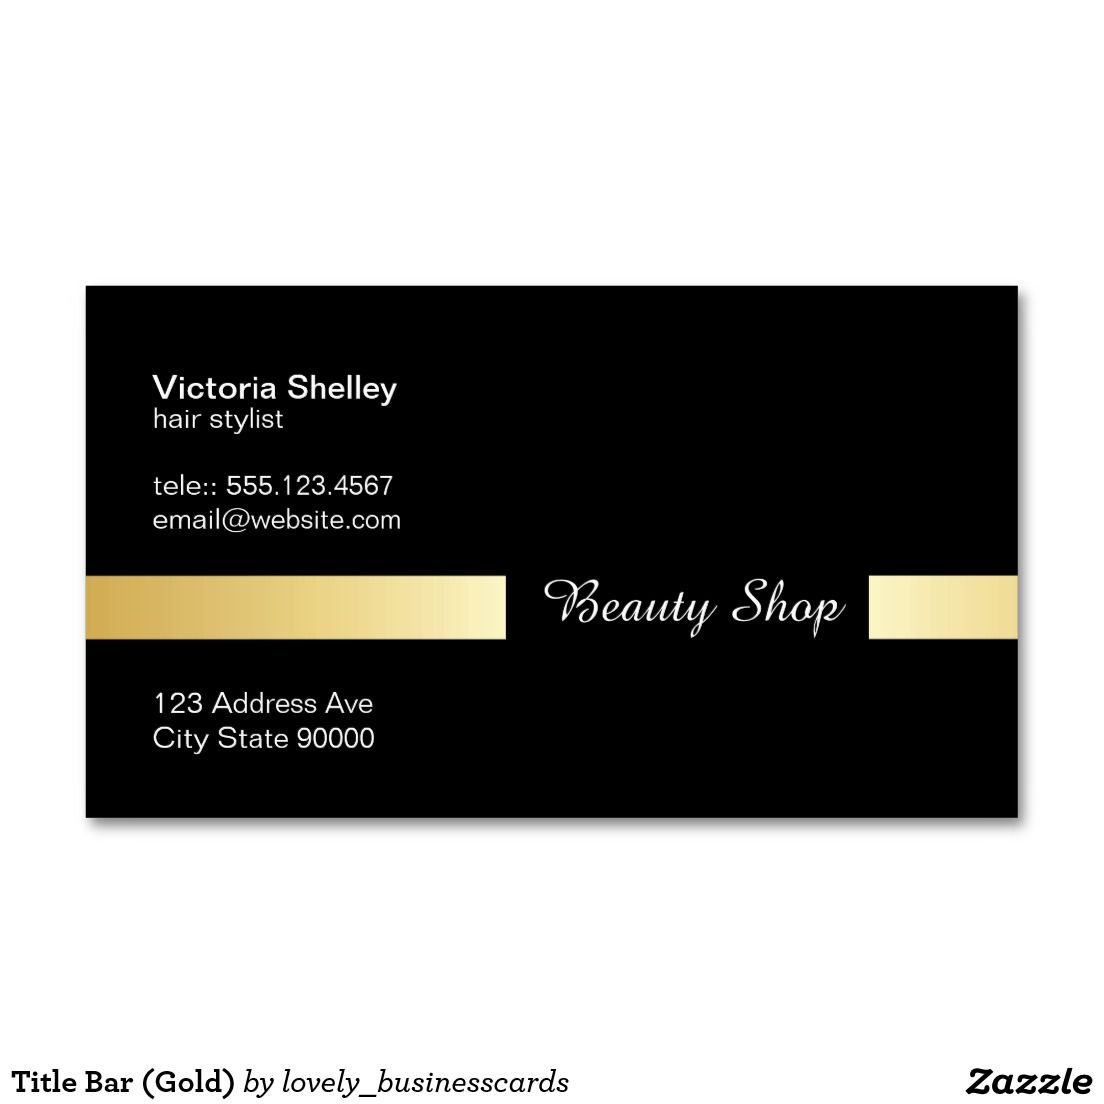 Title Bar (Gold) Business Card | Pinterest | Business and Support ...